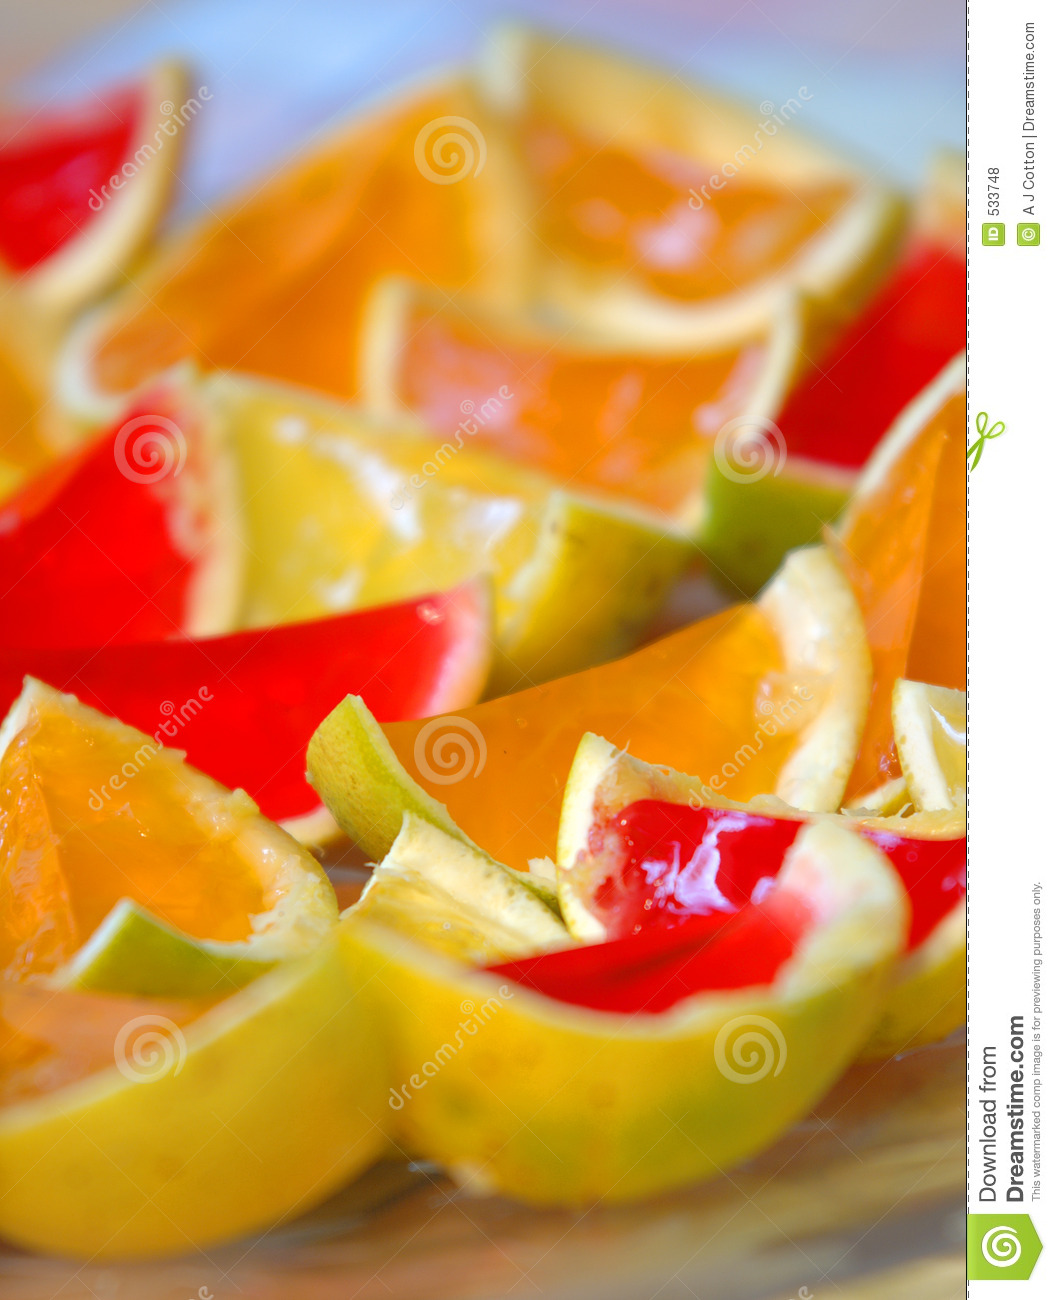 Bright Jelly Childrens Party Food On Orange Rinds Royalty